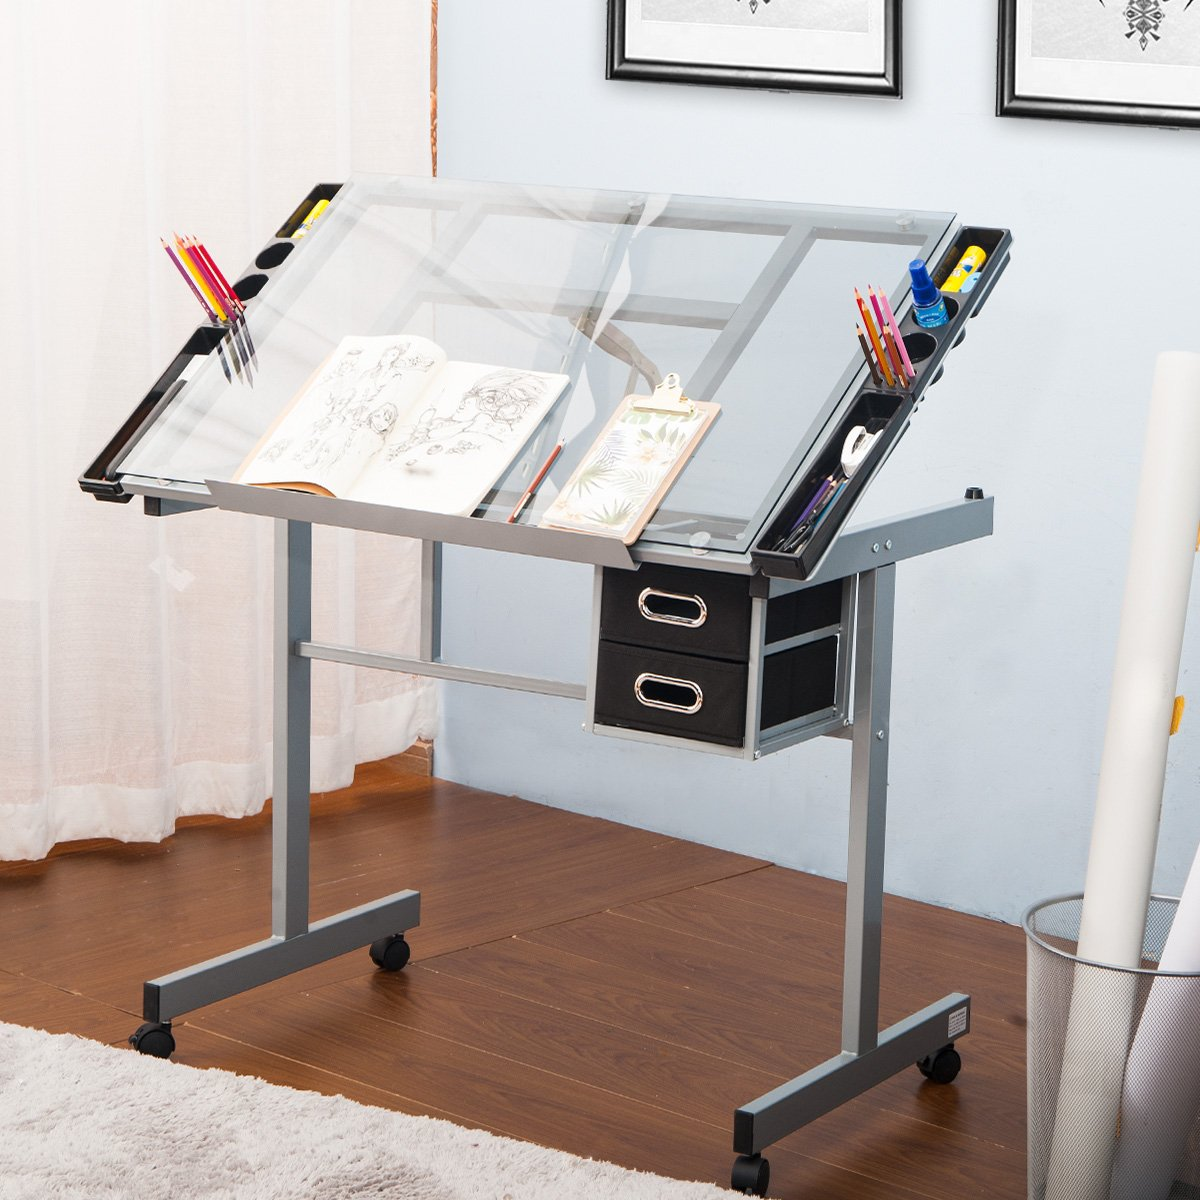 Harper&Bright Designs Adjustable Drafting Table Drawing Desk with Tempered Glass Top, Two Drawers and Castors by Harper&Bright Designs (Image #3)